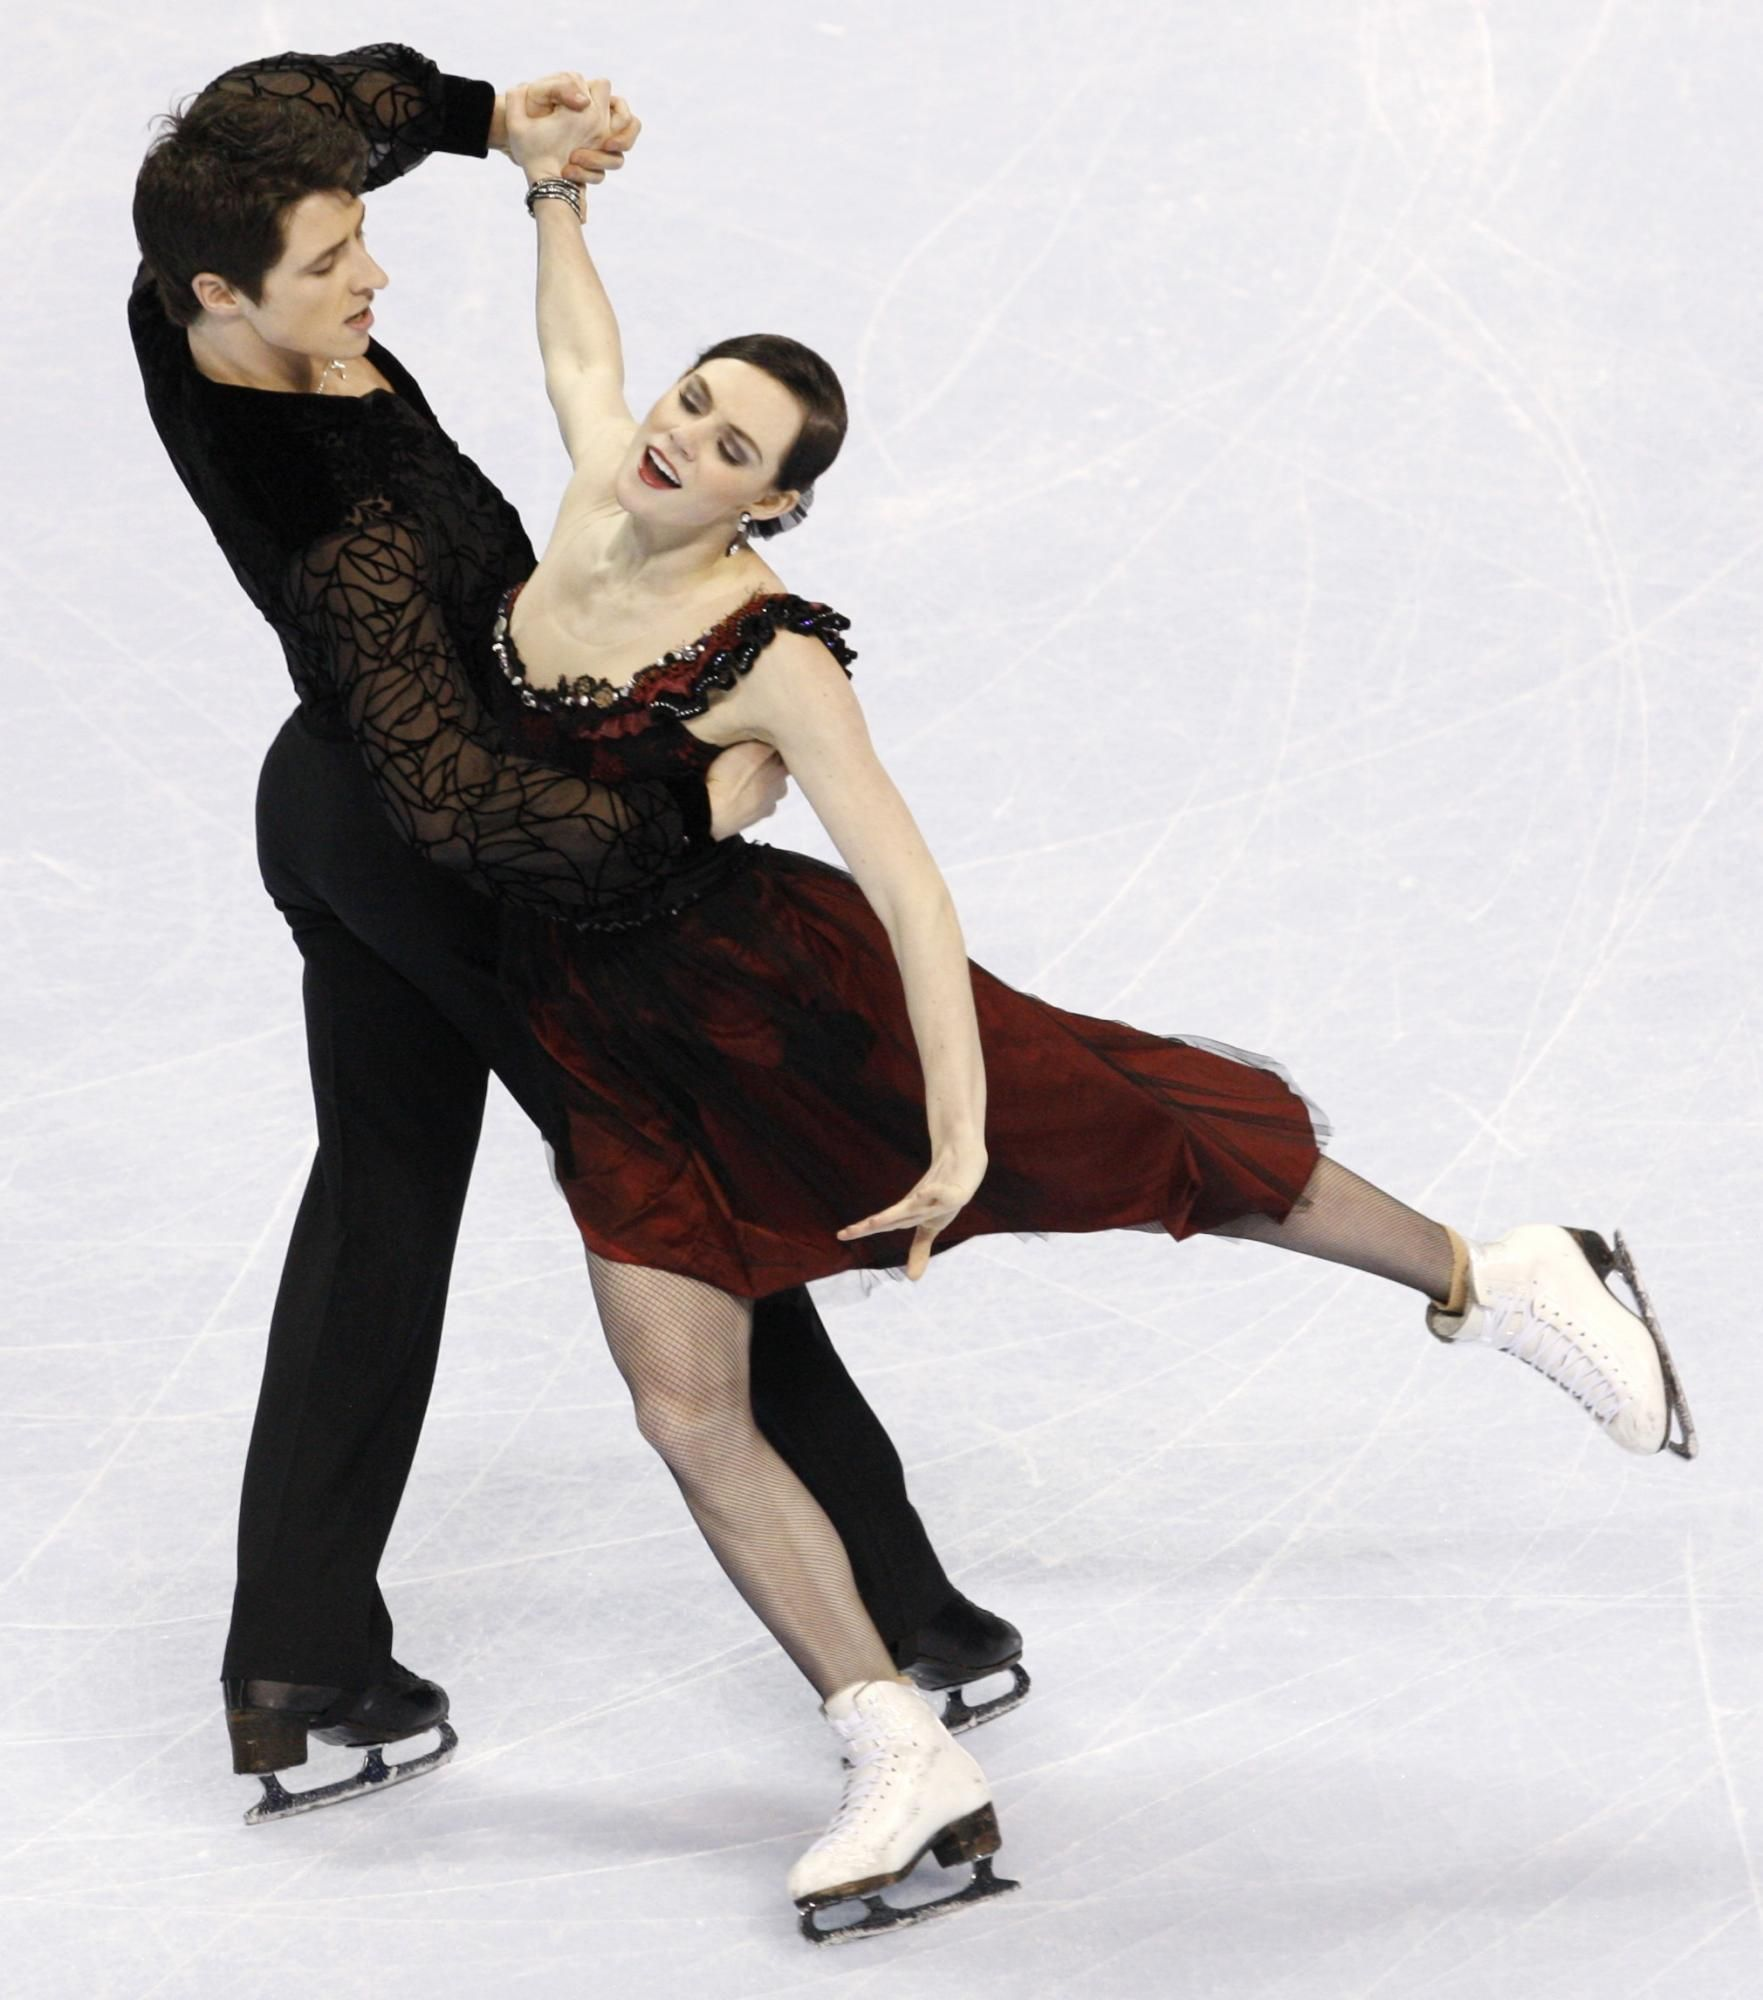 ...the Ice Dance Compulsory Dance at the 2010 BMO Canadian ...